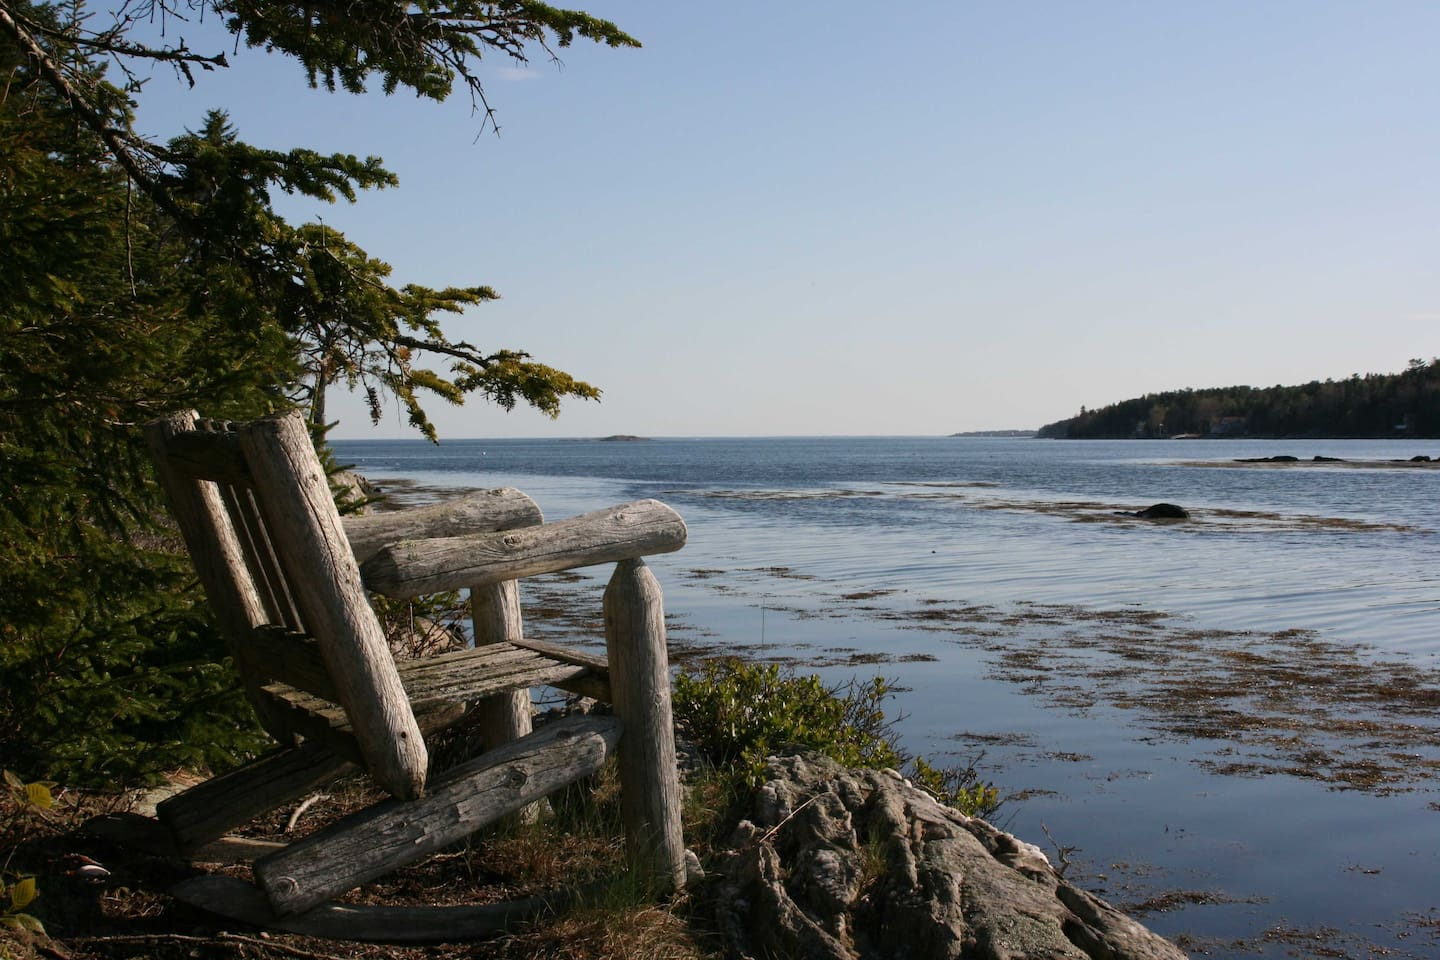 View looking out of Gun Point Cove towards open ocean.